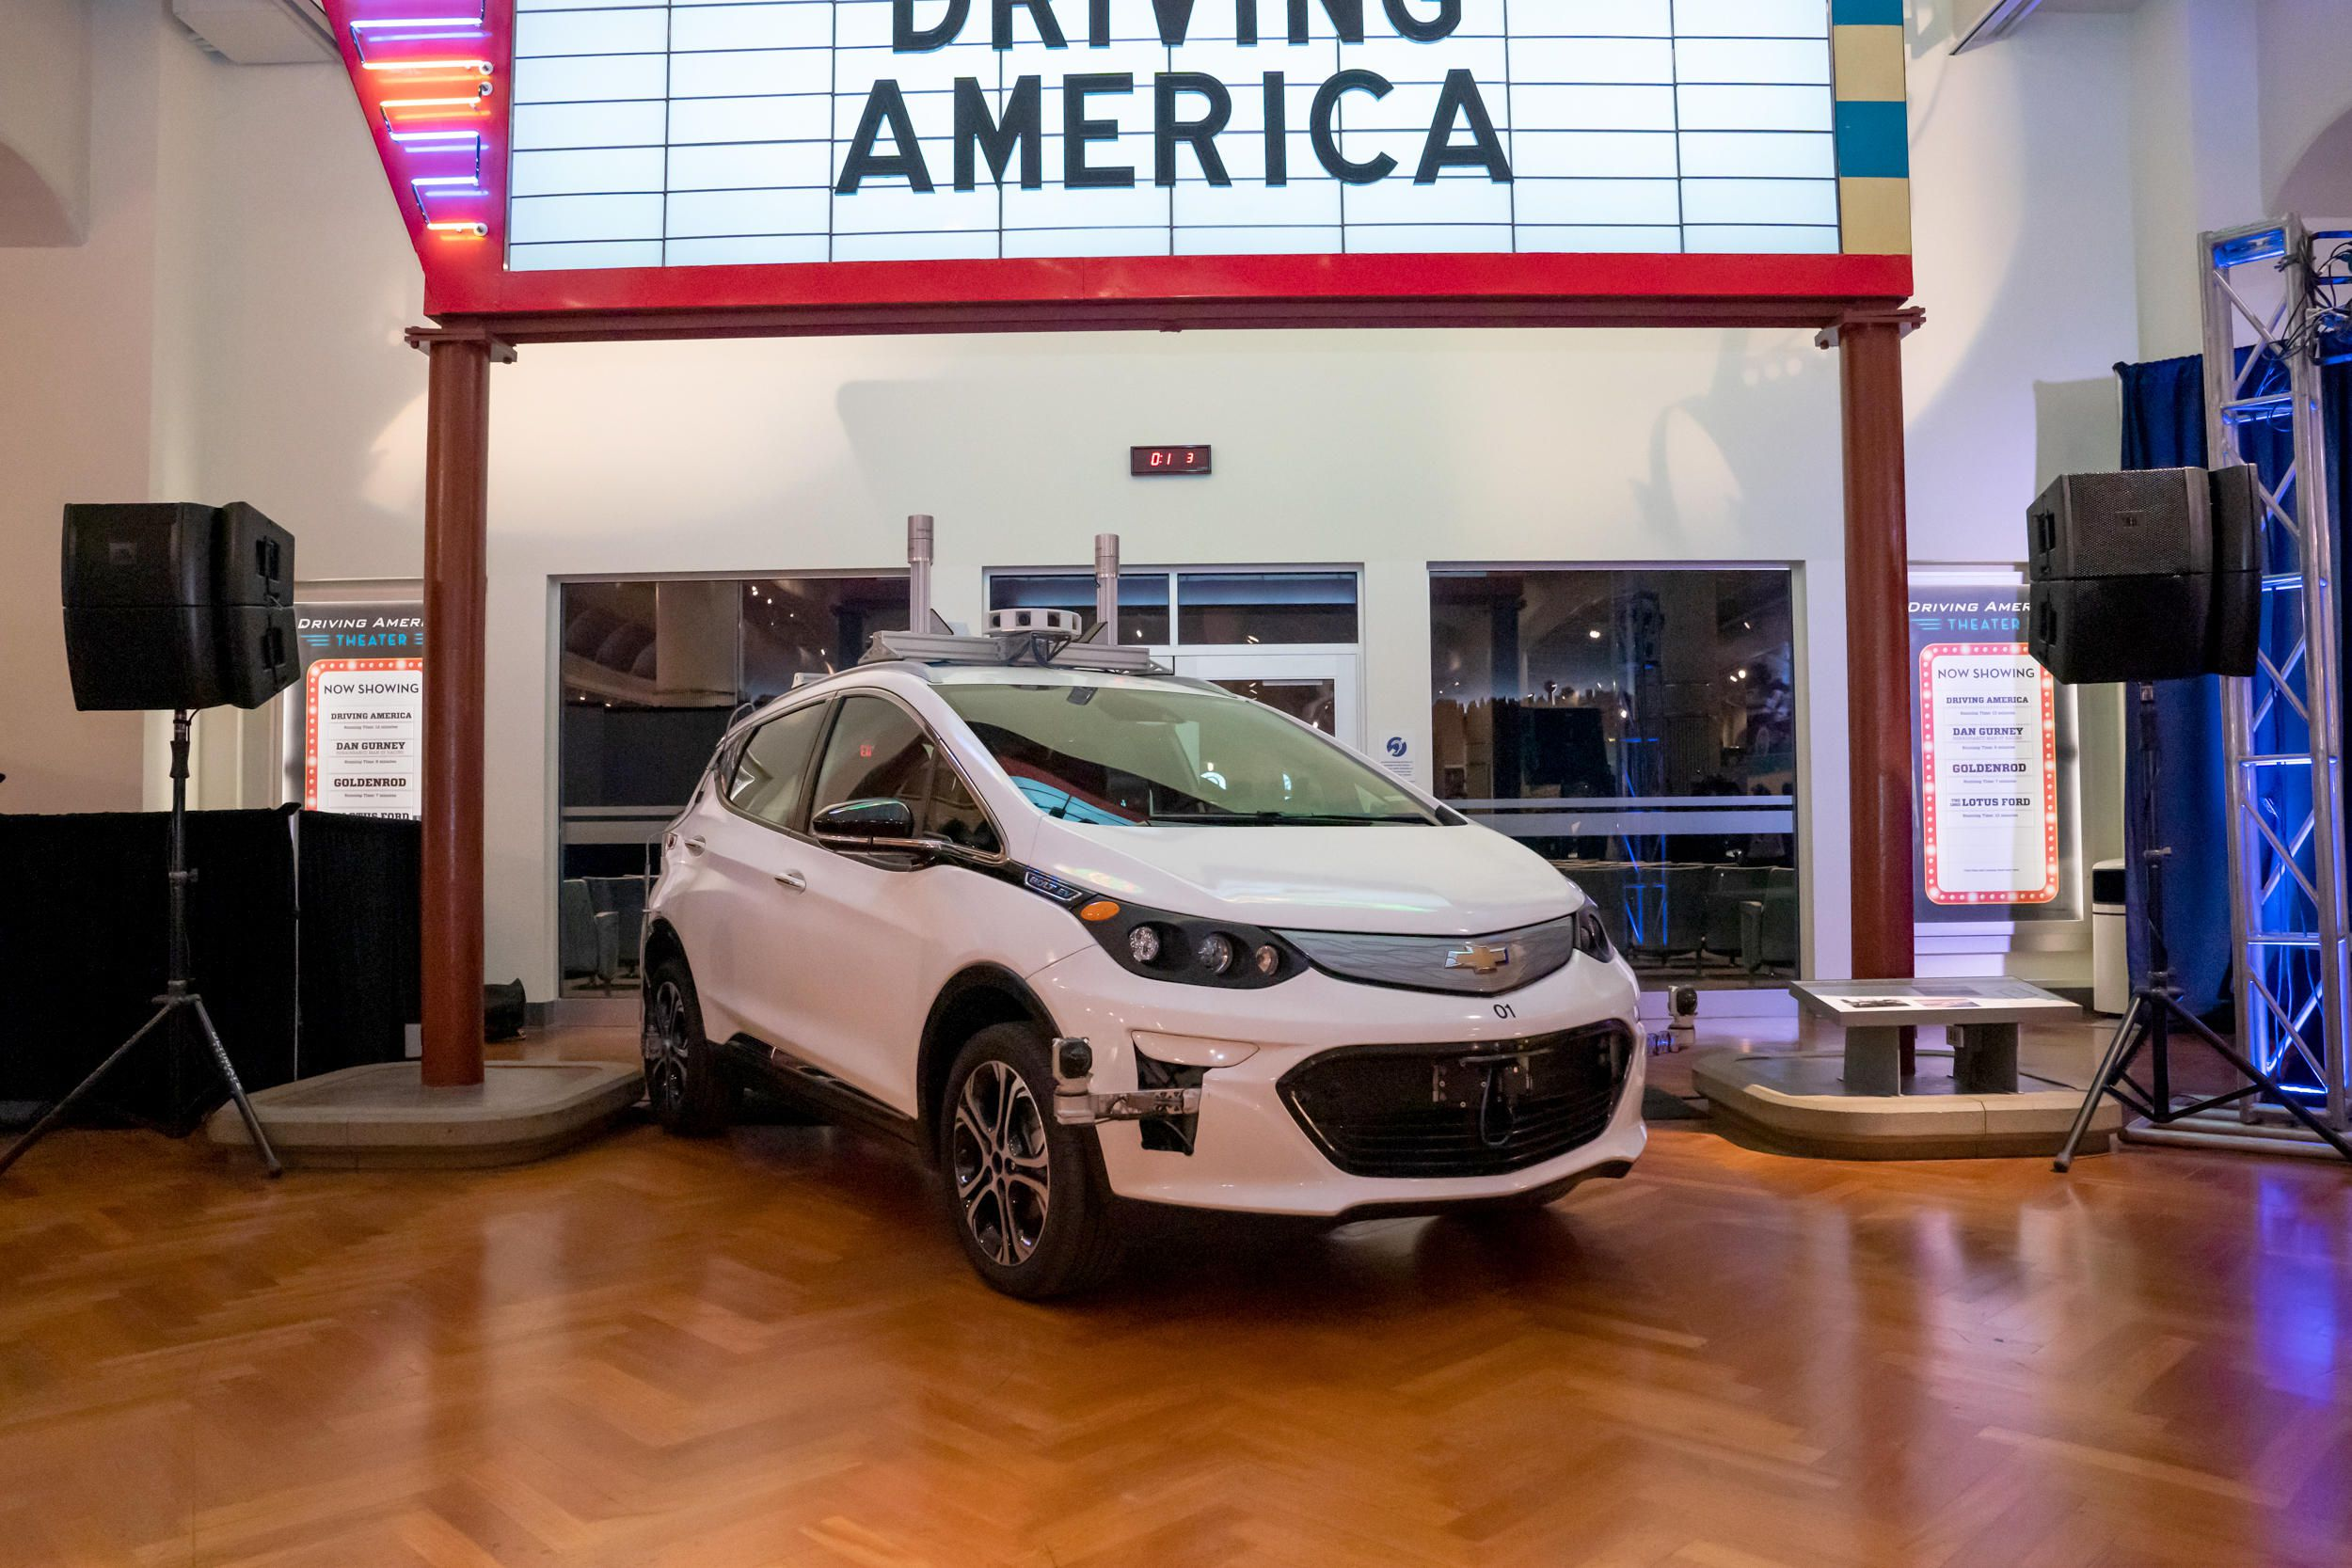 The Henry Ford Museum's first self-driving car is a Chevy Bolt thumbnail